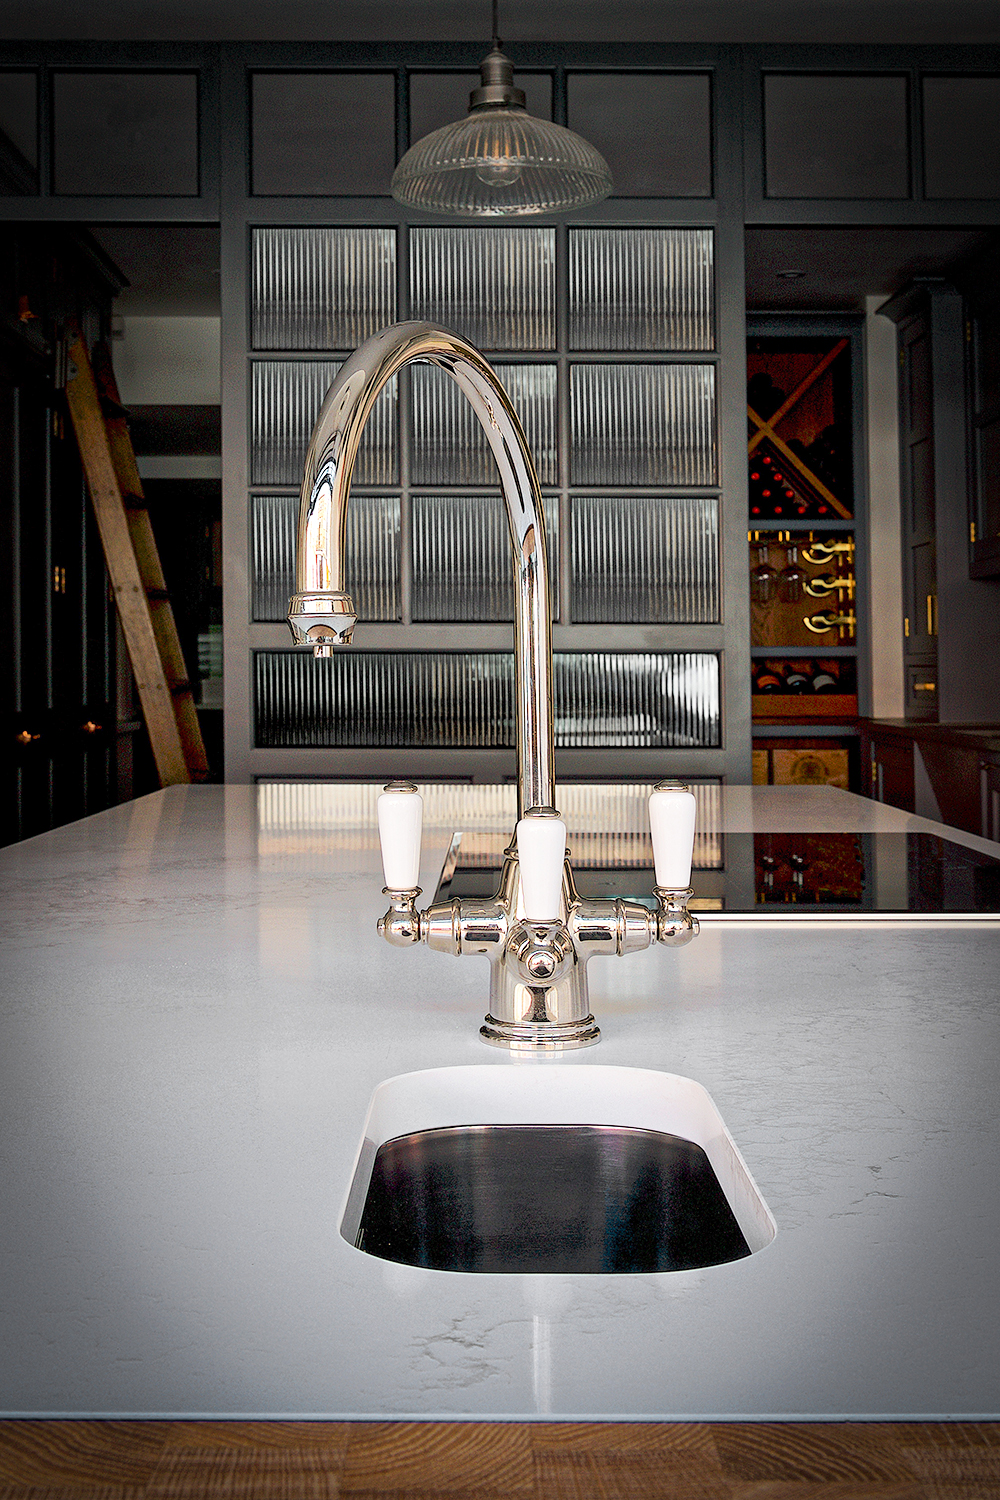 Perrin & Rowe Phoenician mixer tap in stainless steel finish on island with Caesarstone Calacatta Nuvo worktop.